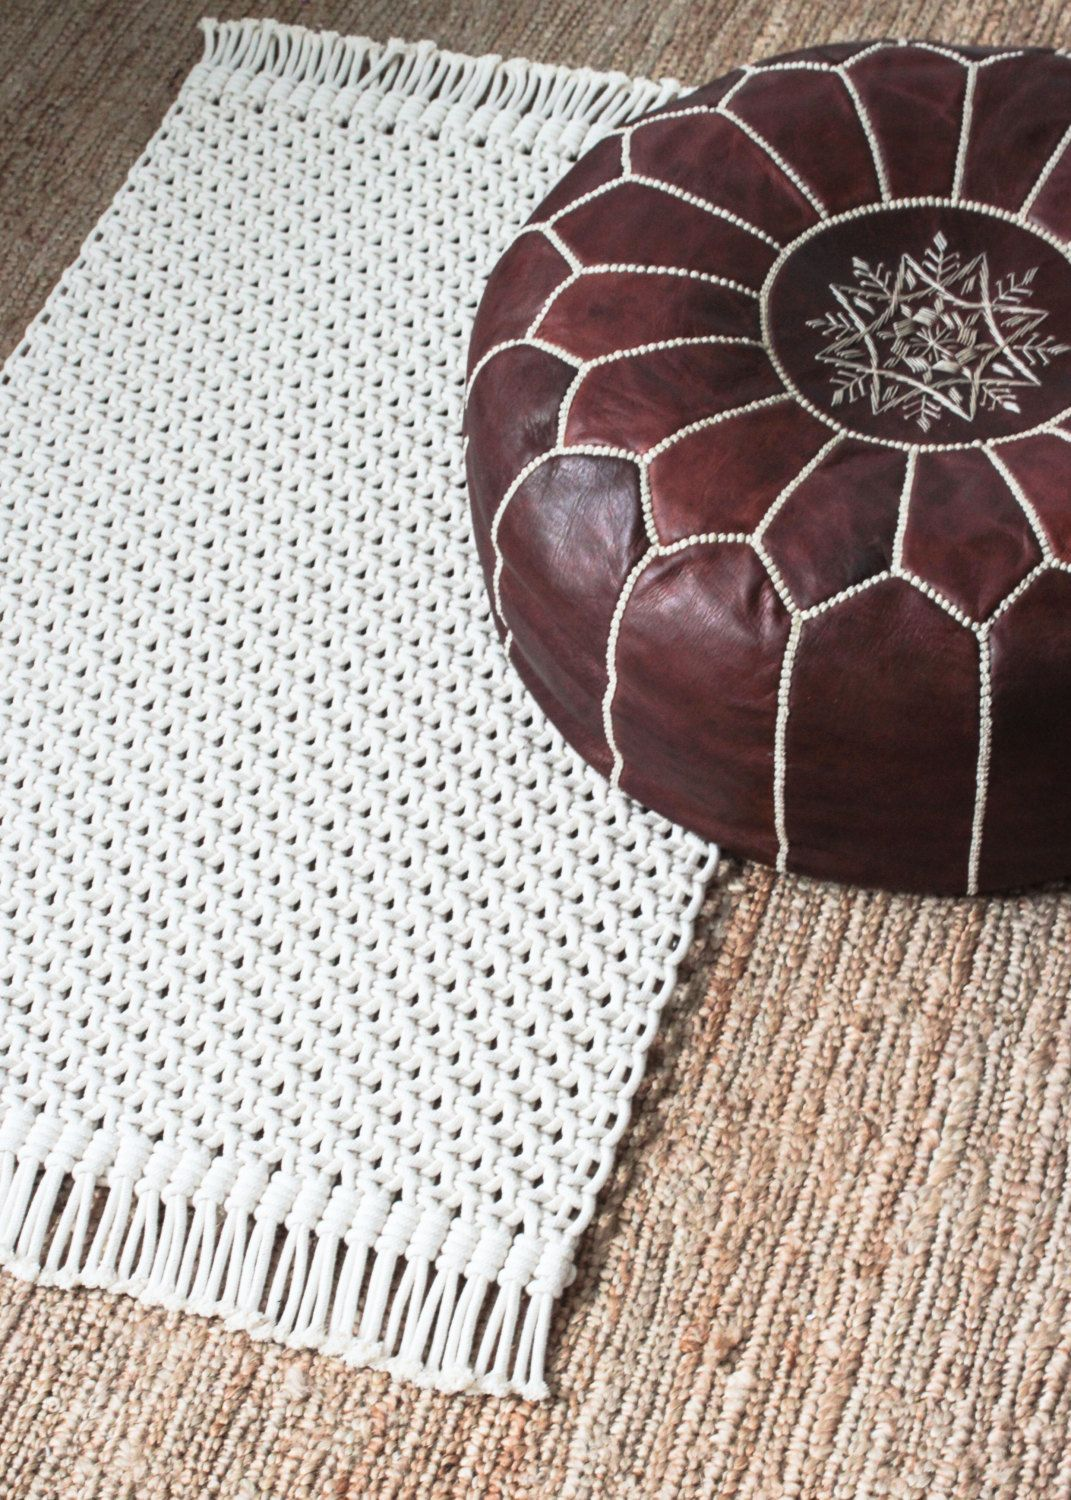 1000 images about crochet thread mini amp micro on pinterest - Macrame Rug Cotton Cord In Natural Ecru By Jojansenco